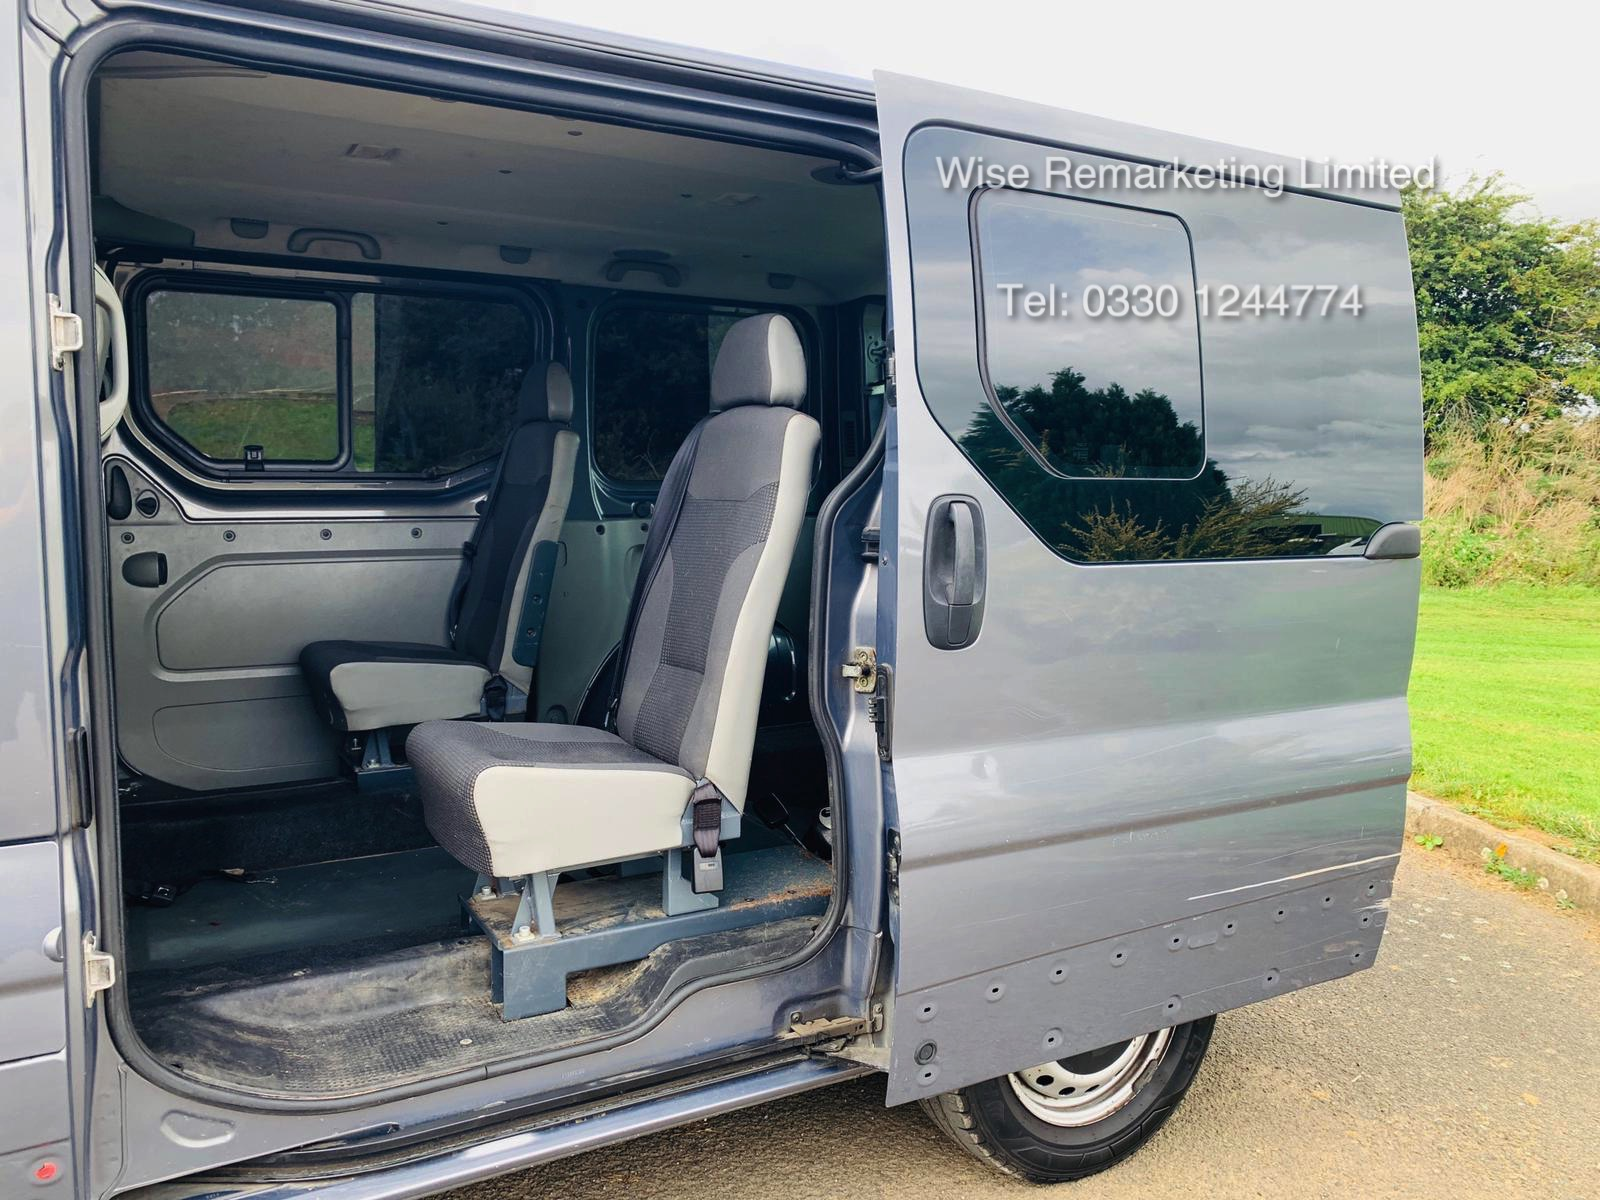 Vauxhall Vivaro 2.0 CDTI 2900 Minibus - 2014 Model - Wheel Chair Access -1 Owner From New -History - Image 15 of 21